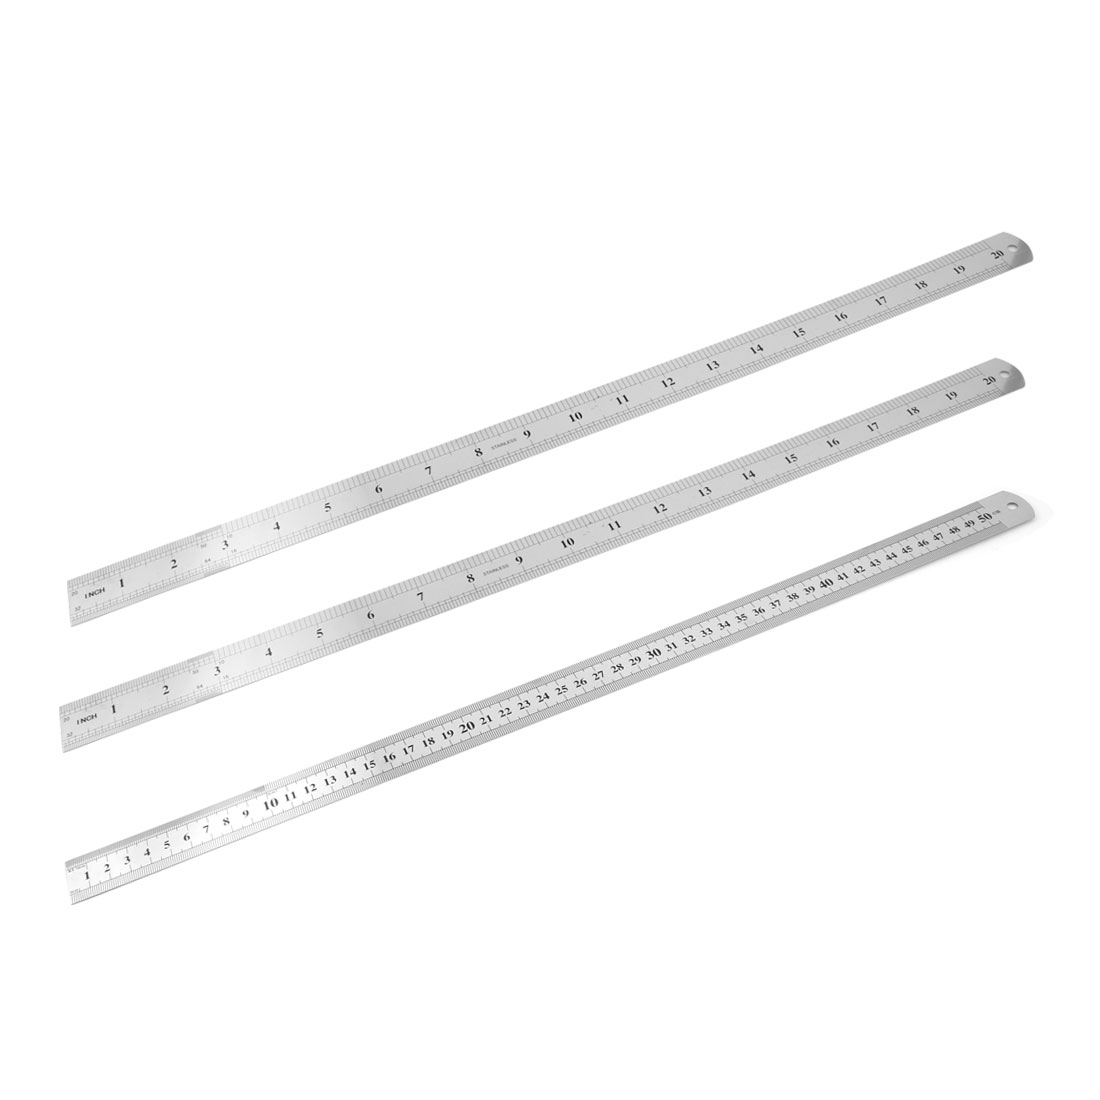 "3 Pcs Double Sides Stainless Steel Metric 50cm 20"" Scale Straight Rulers"